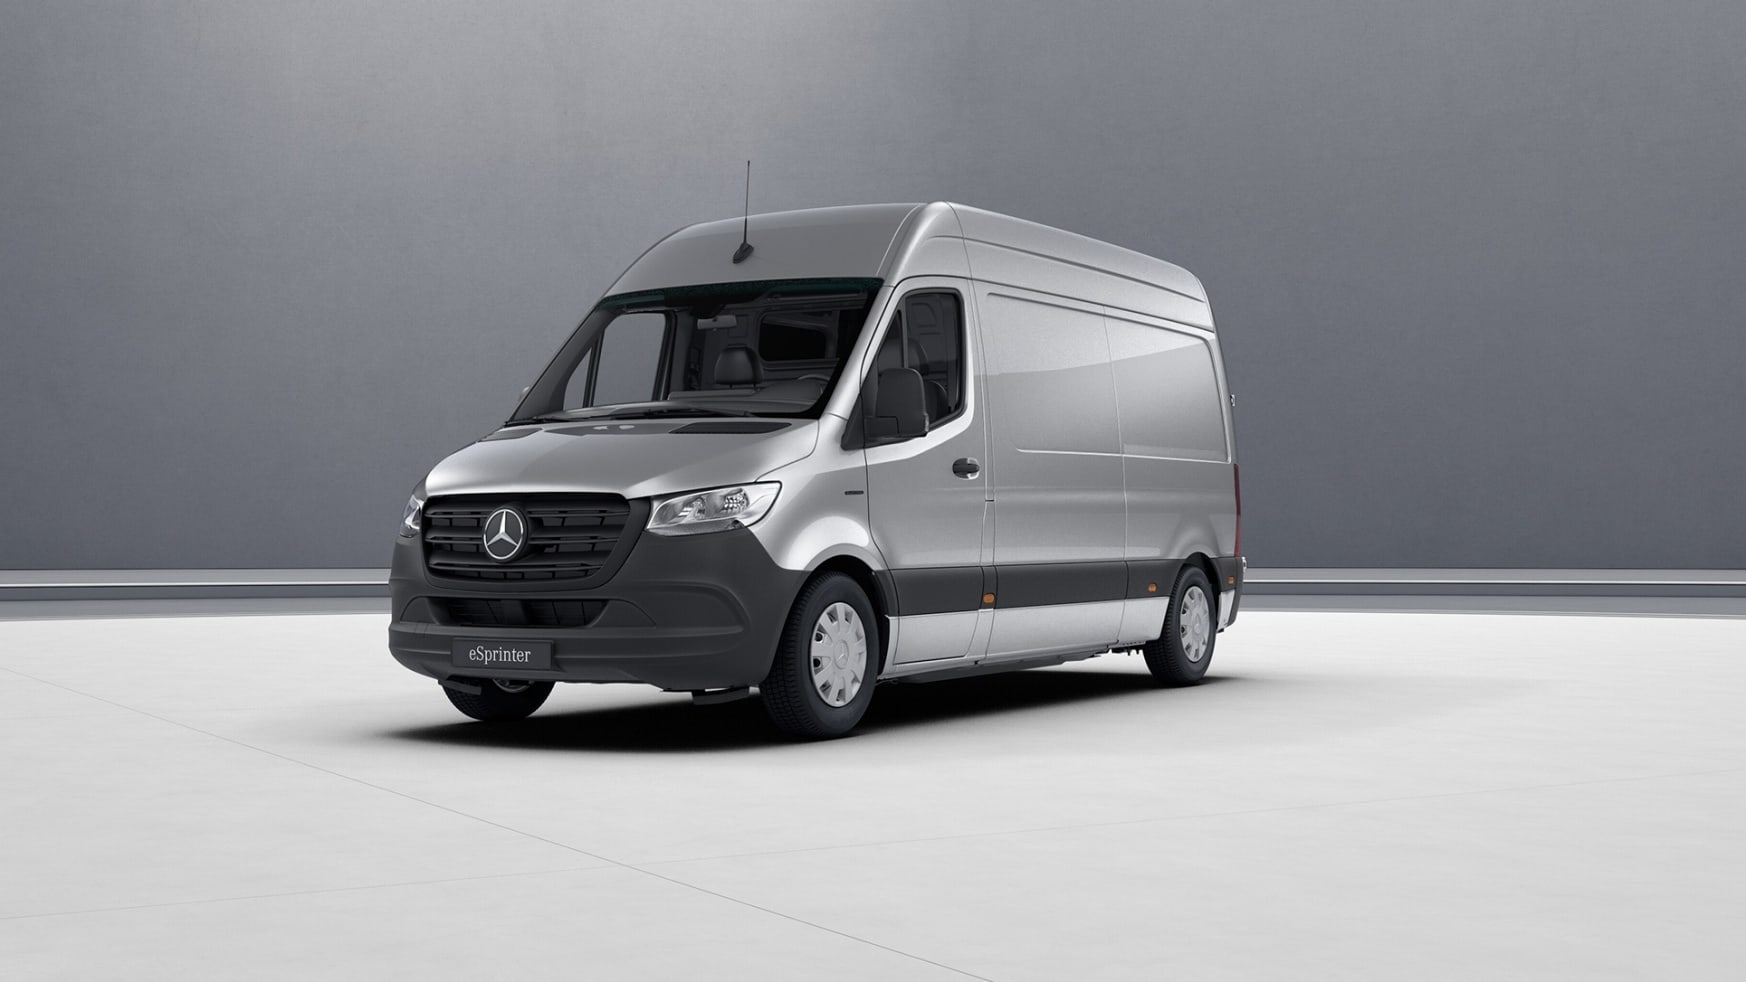 eSprinter Kastenwagen